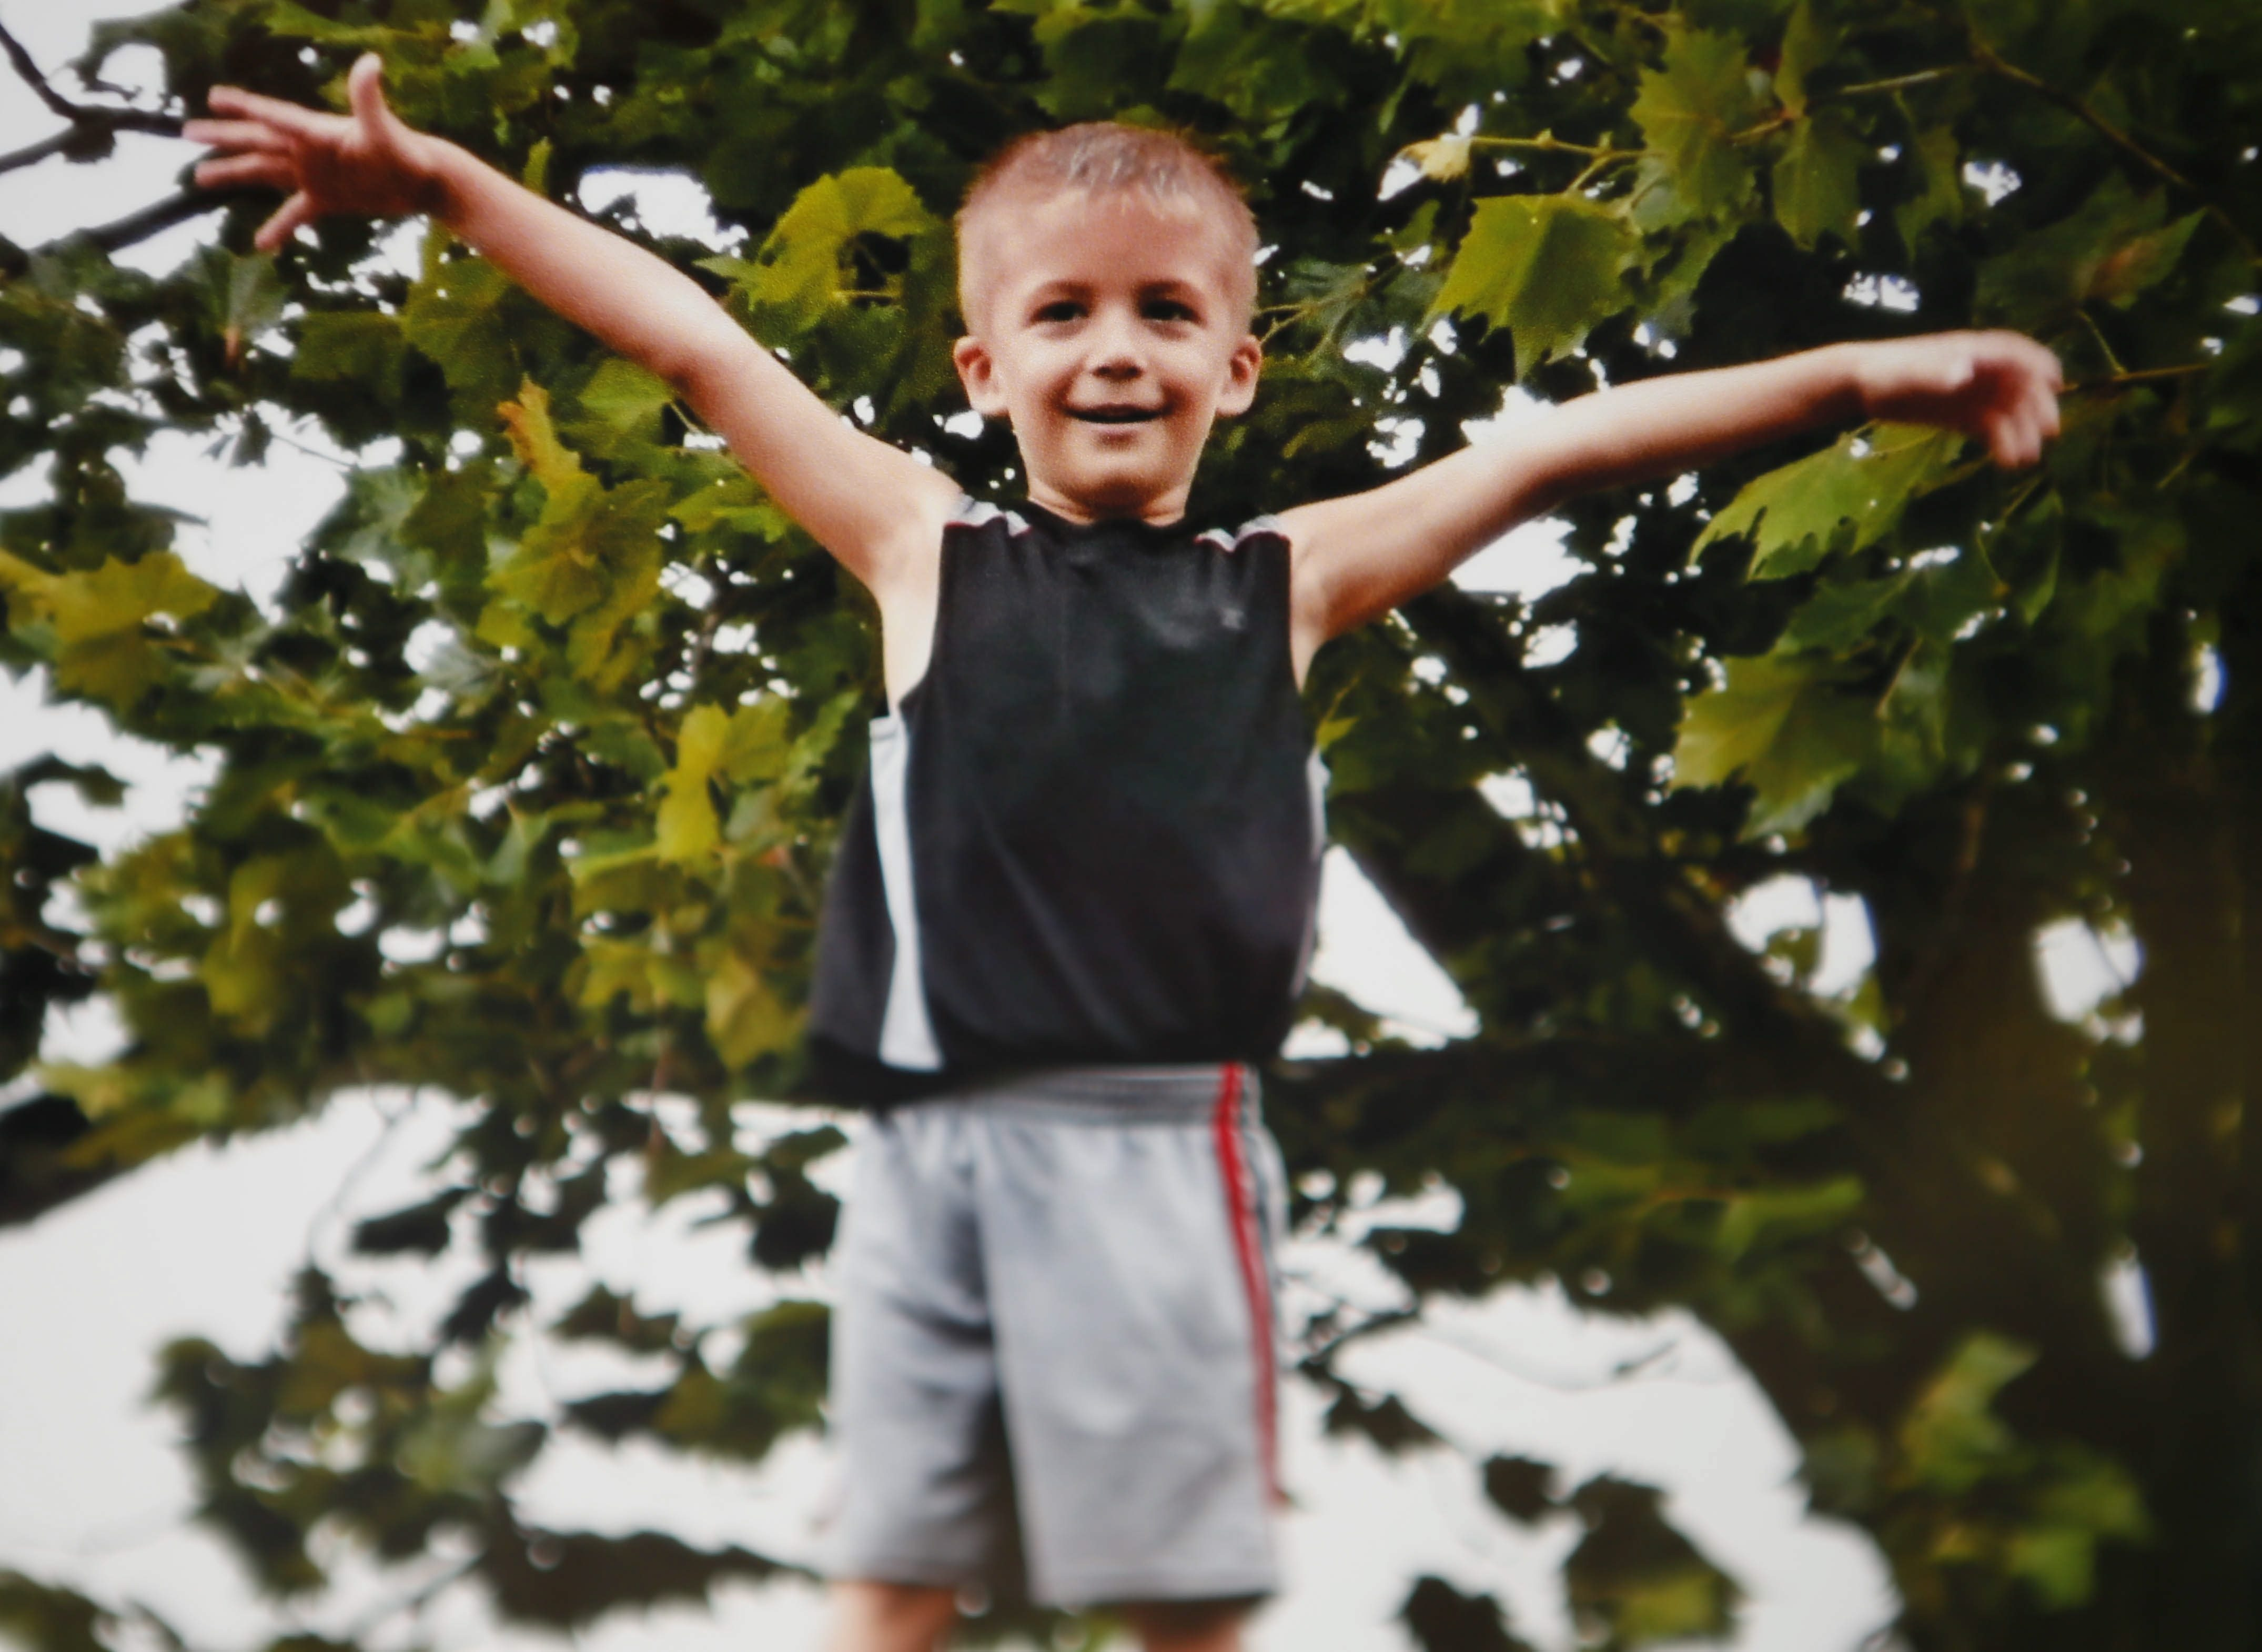 Eain Brooks was beaten to death last week. His mother's boyfriend has been charged.